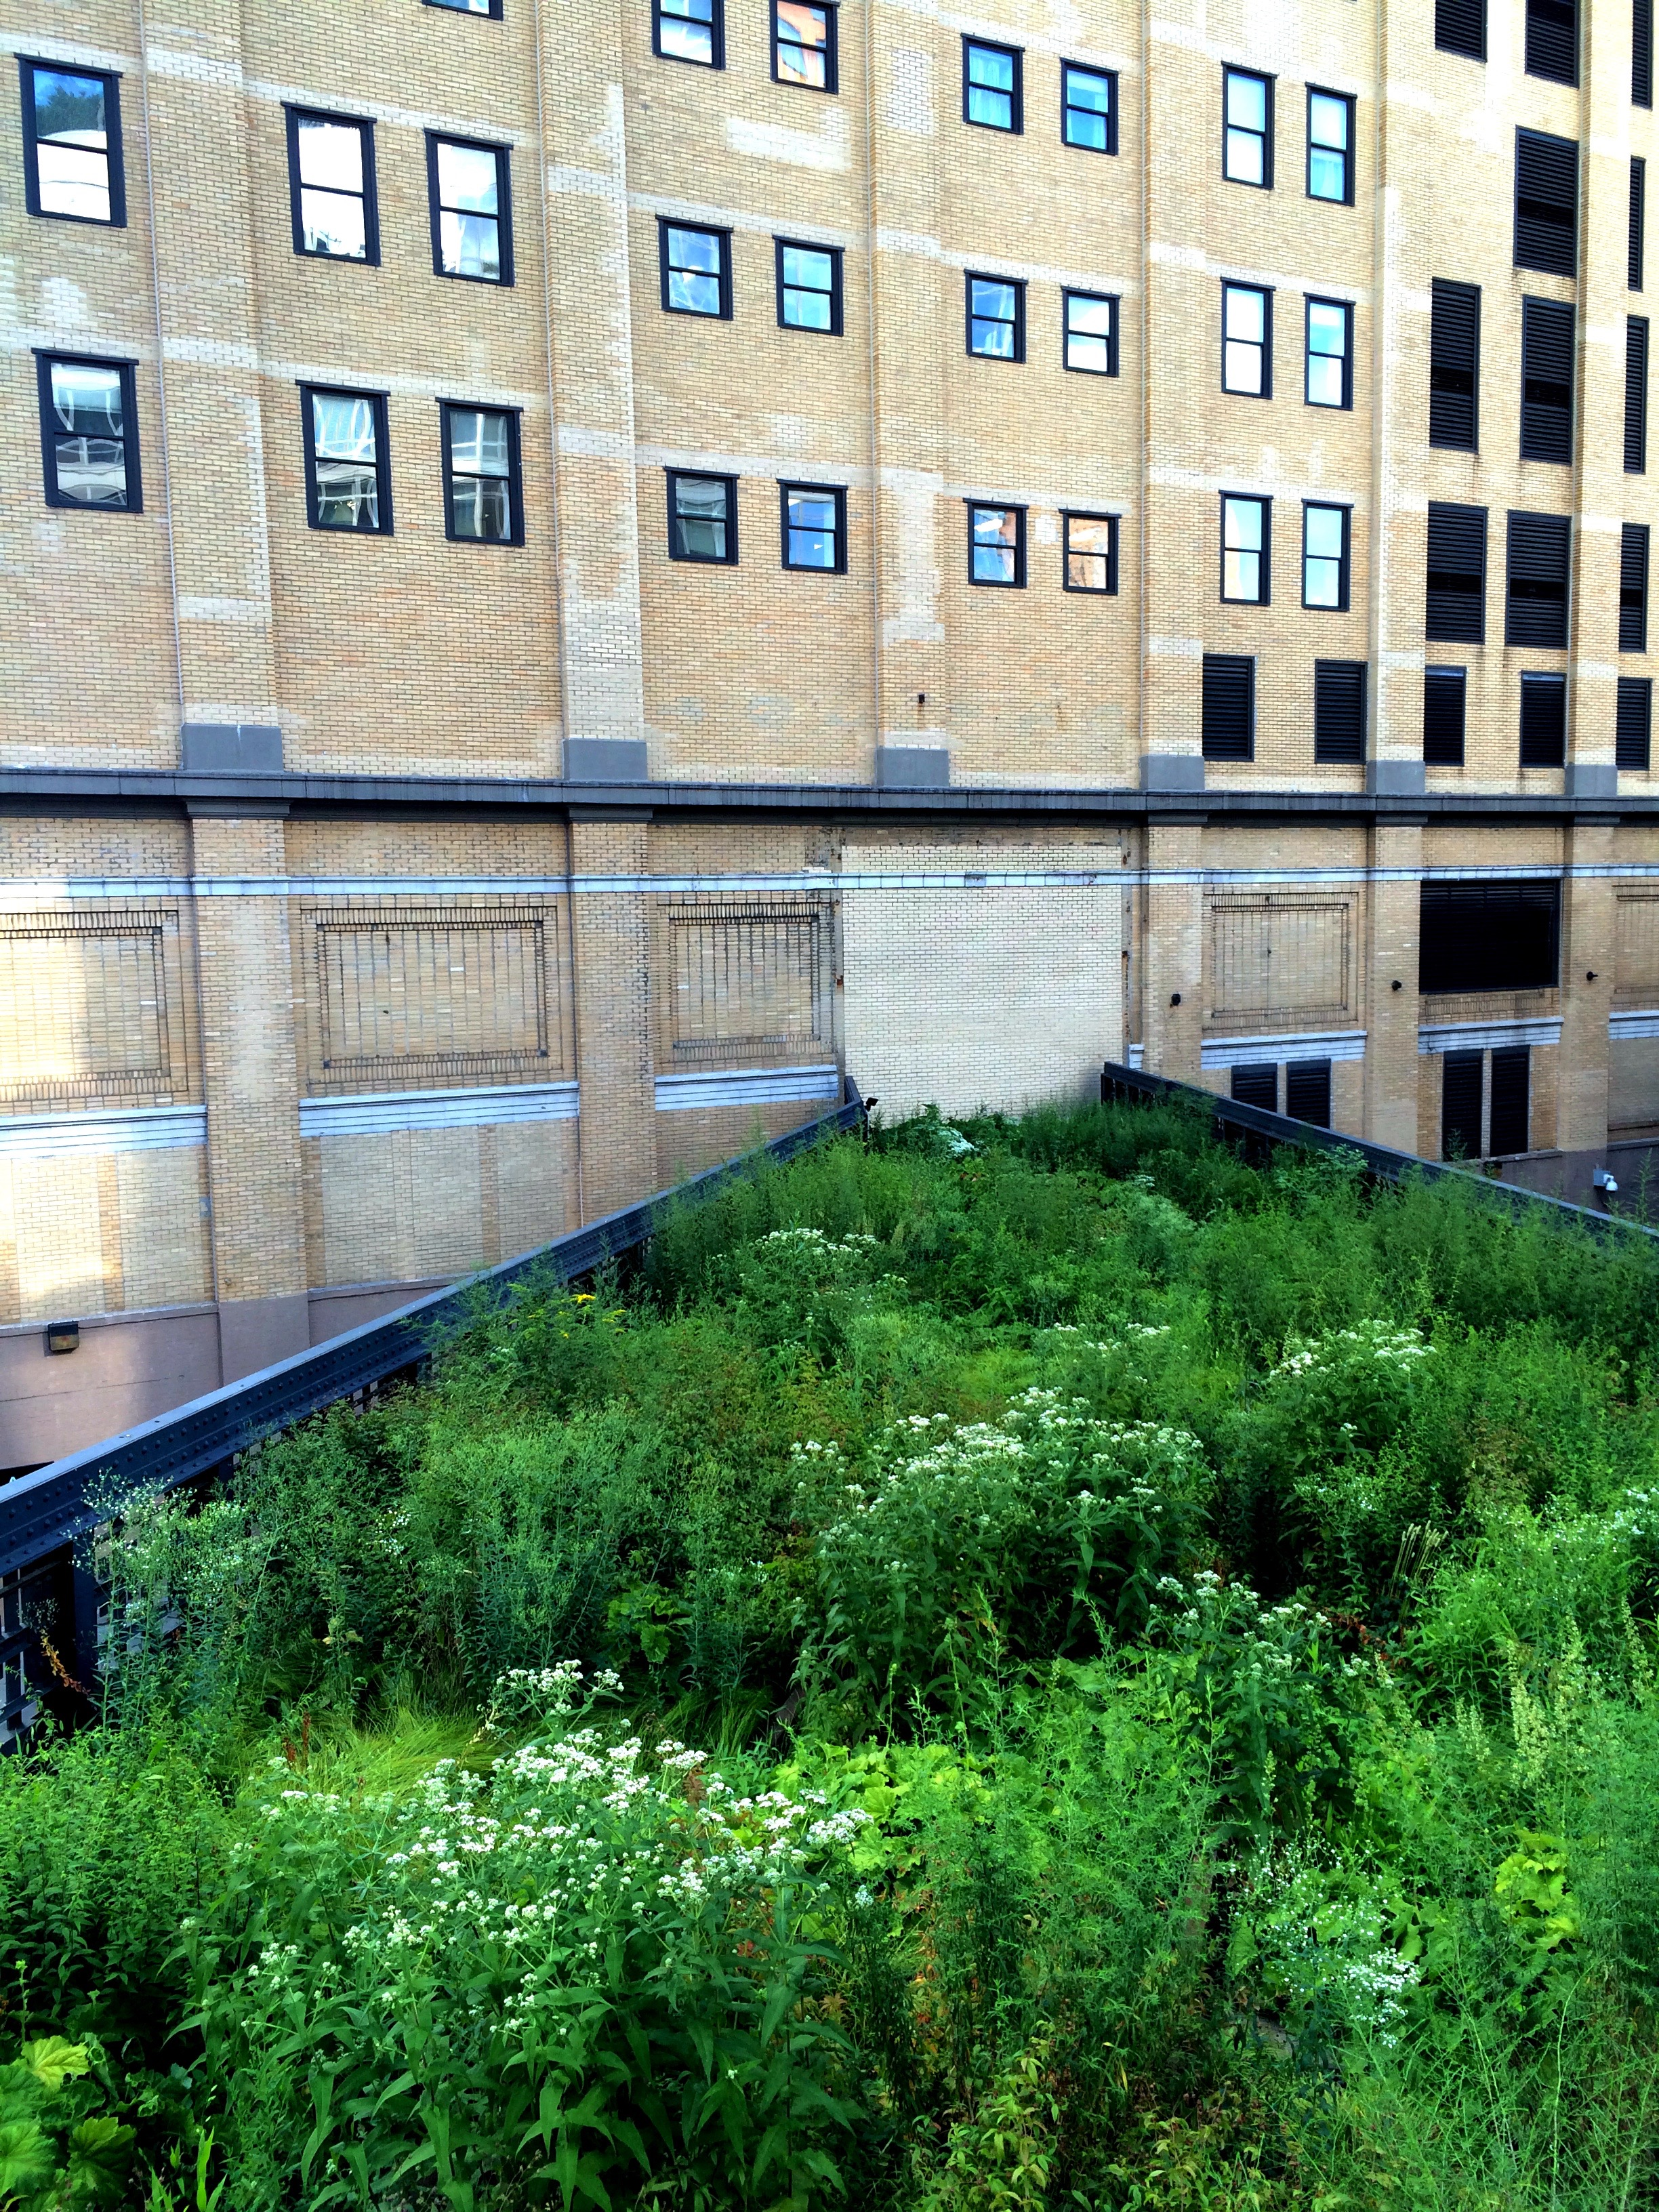 The Highline. Free in NYC